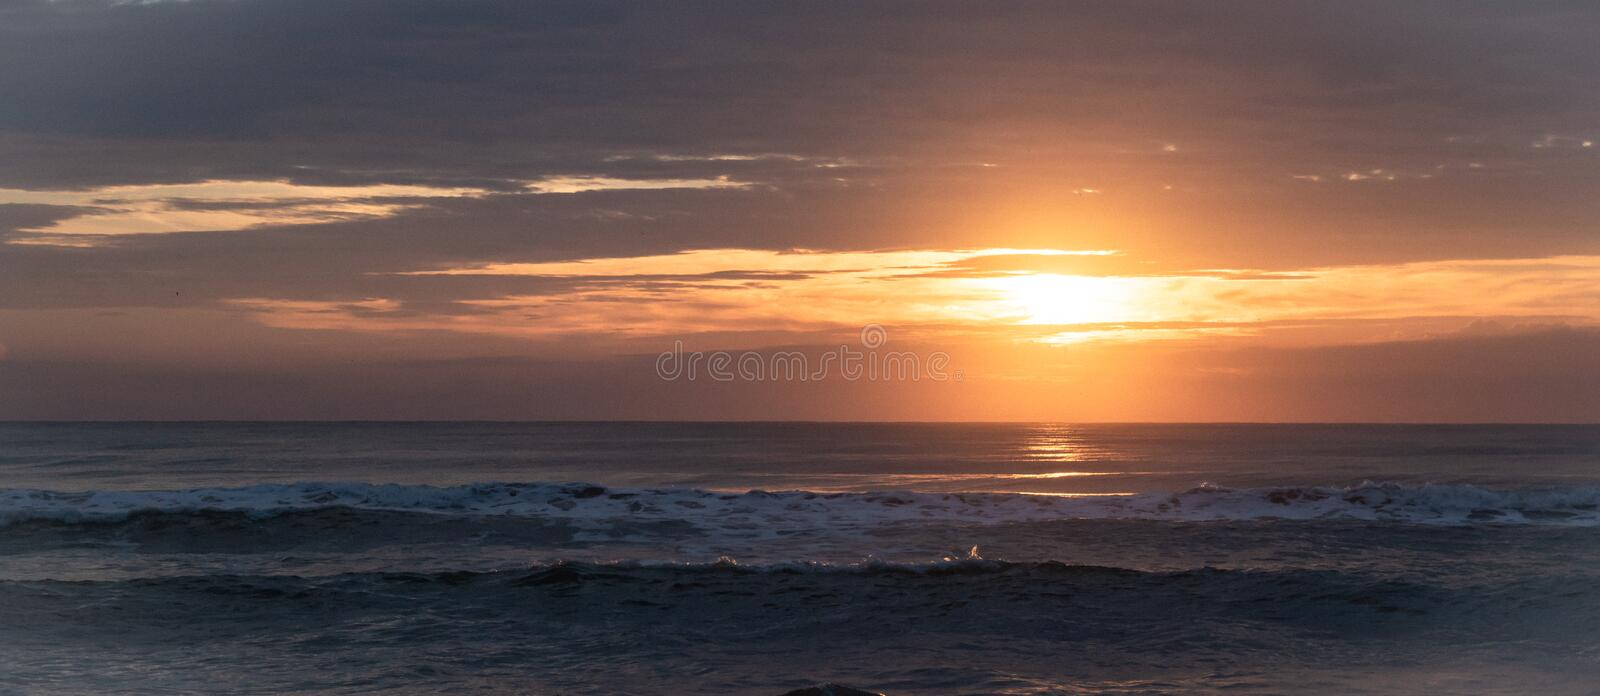 Sunrise and beautiful reflection over the sea in the morning holiday at Ban Krut Beach, Prachuapkirikhan, South of Thailand. stock photography